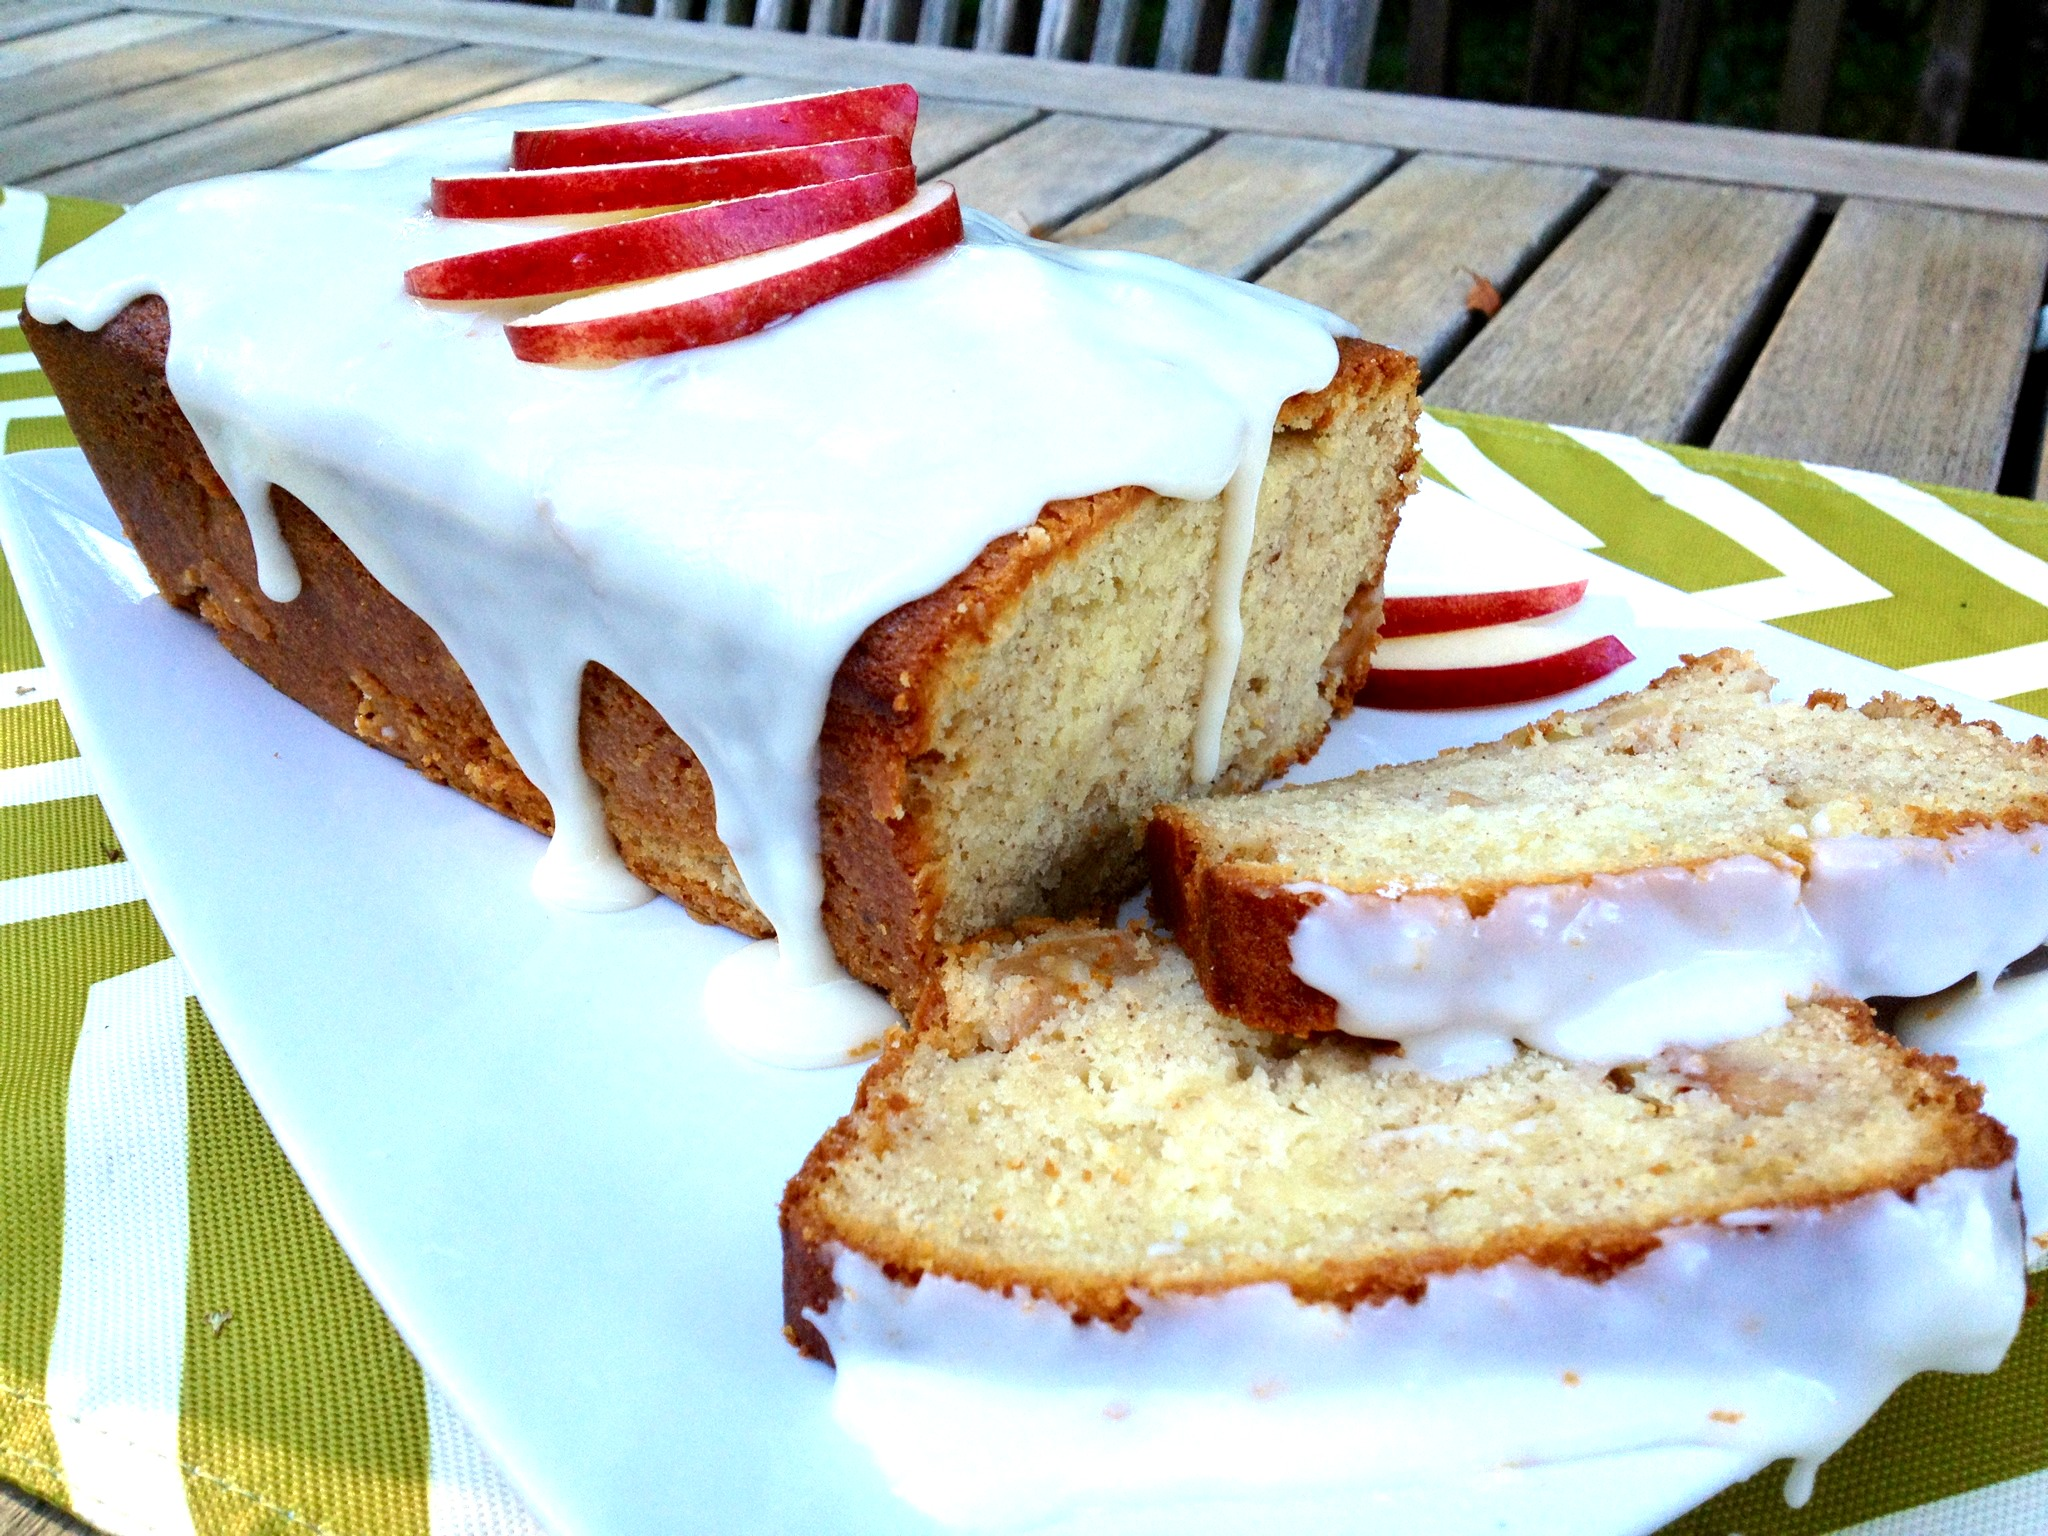 Apple Cake on picnic table